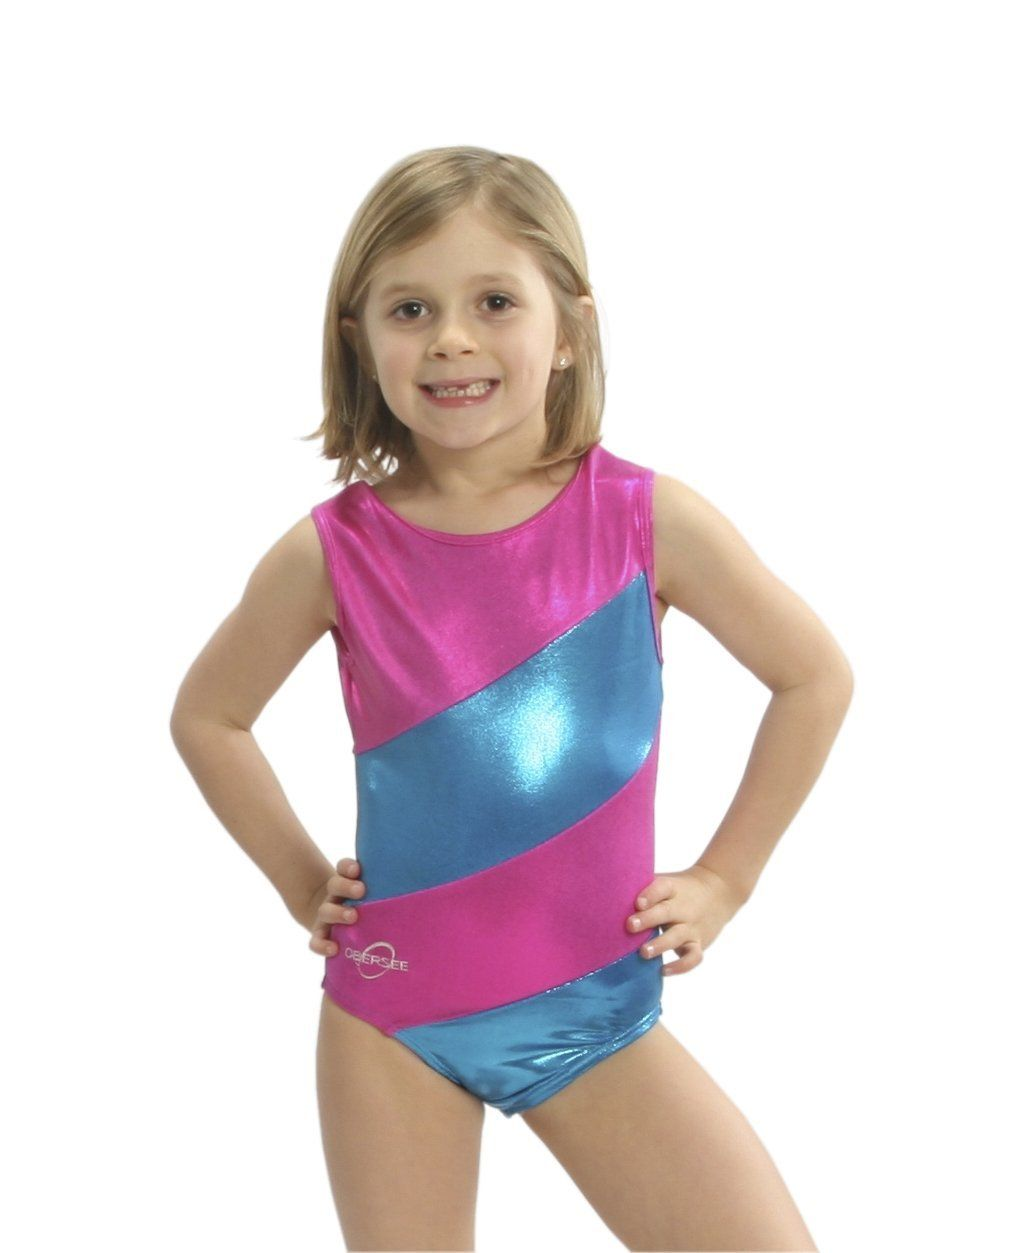 7855dbe5d552 Amazon.com : Obersee Girl's Gymnastics Leotard : Sports & Outdoors ...